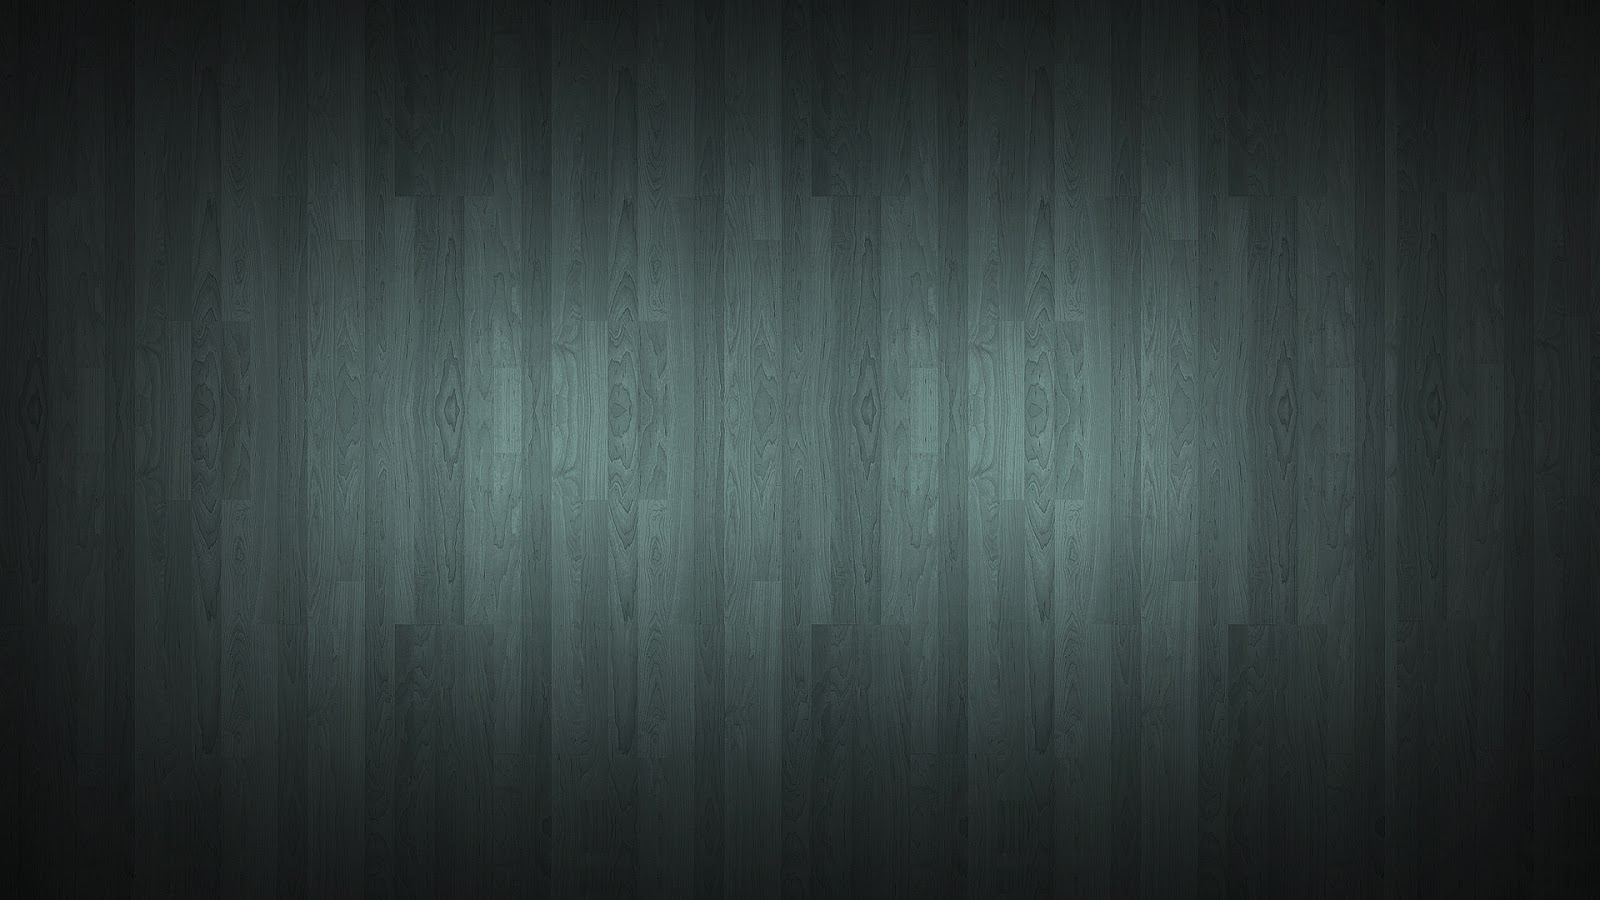 Grey-background-spotlight-powerpoint-ppt-PSD-template-free-download.jpg